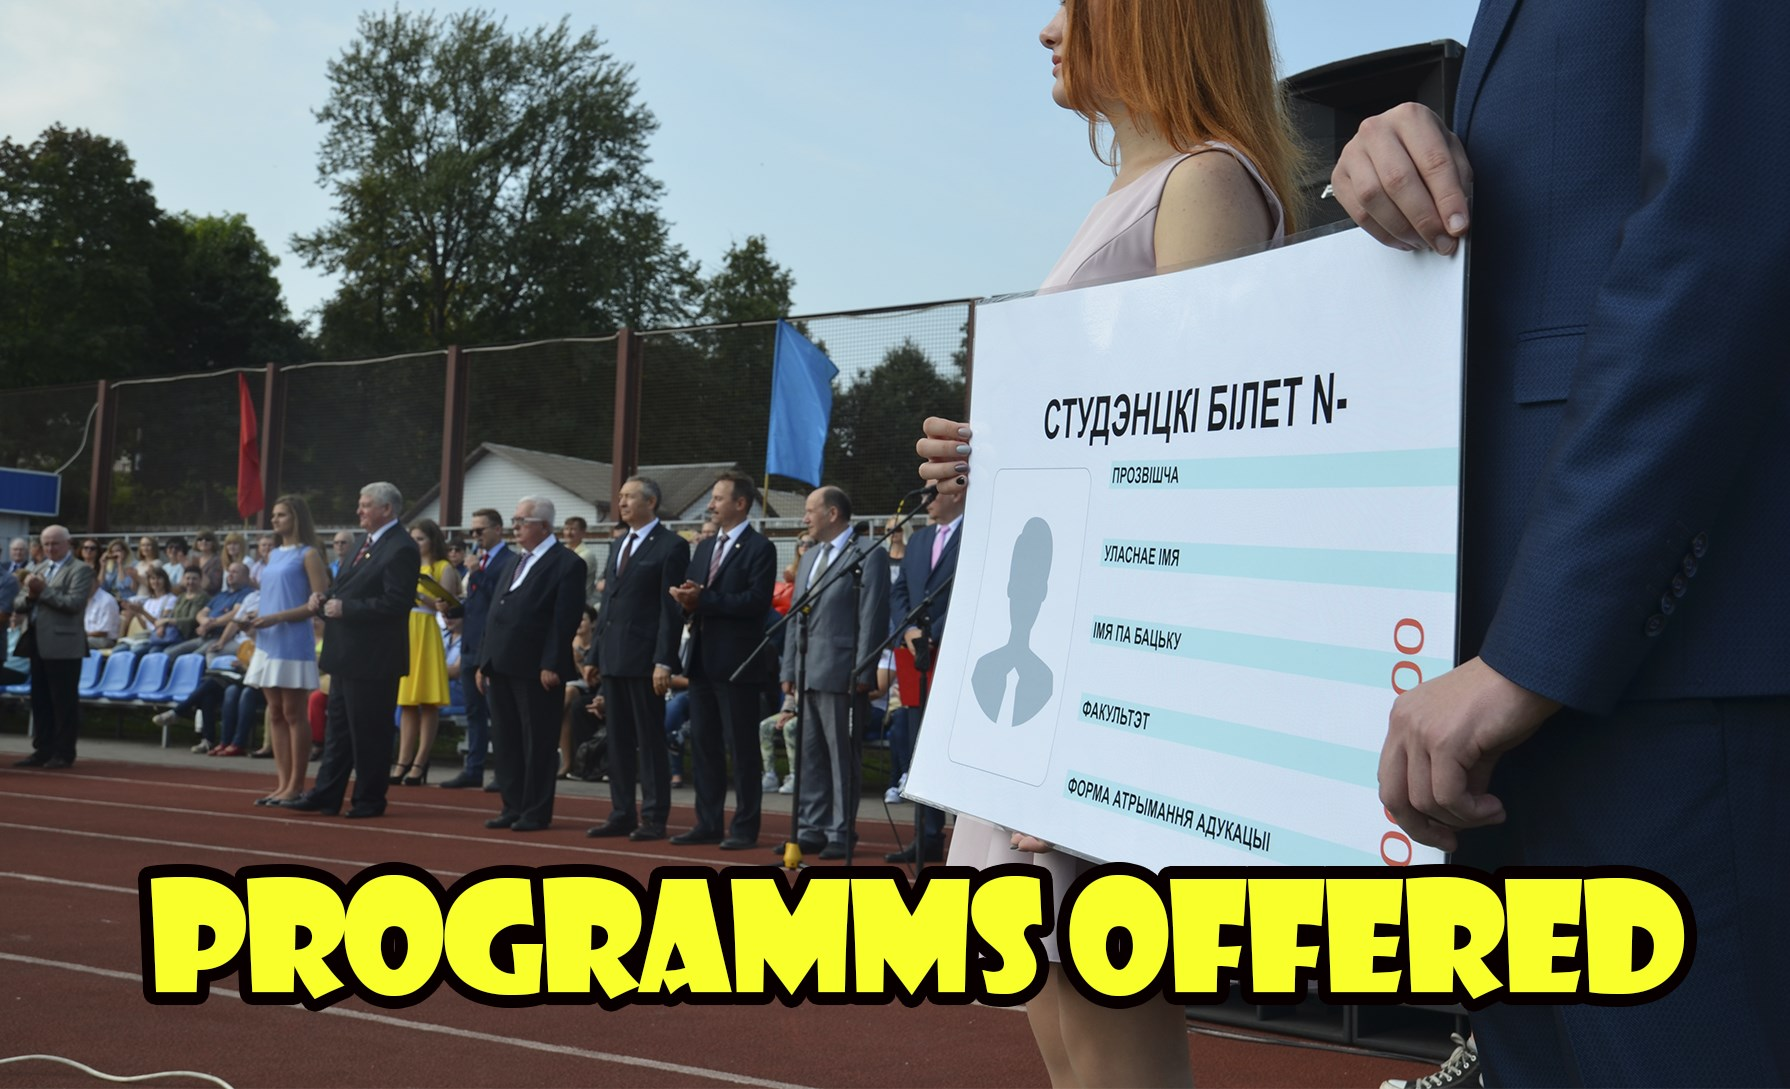 Programms Offered